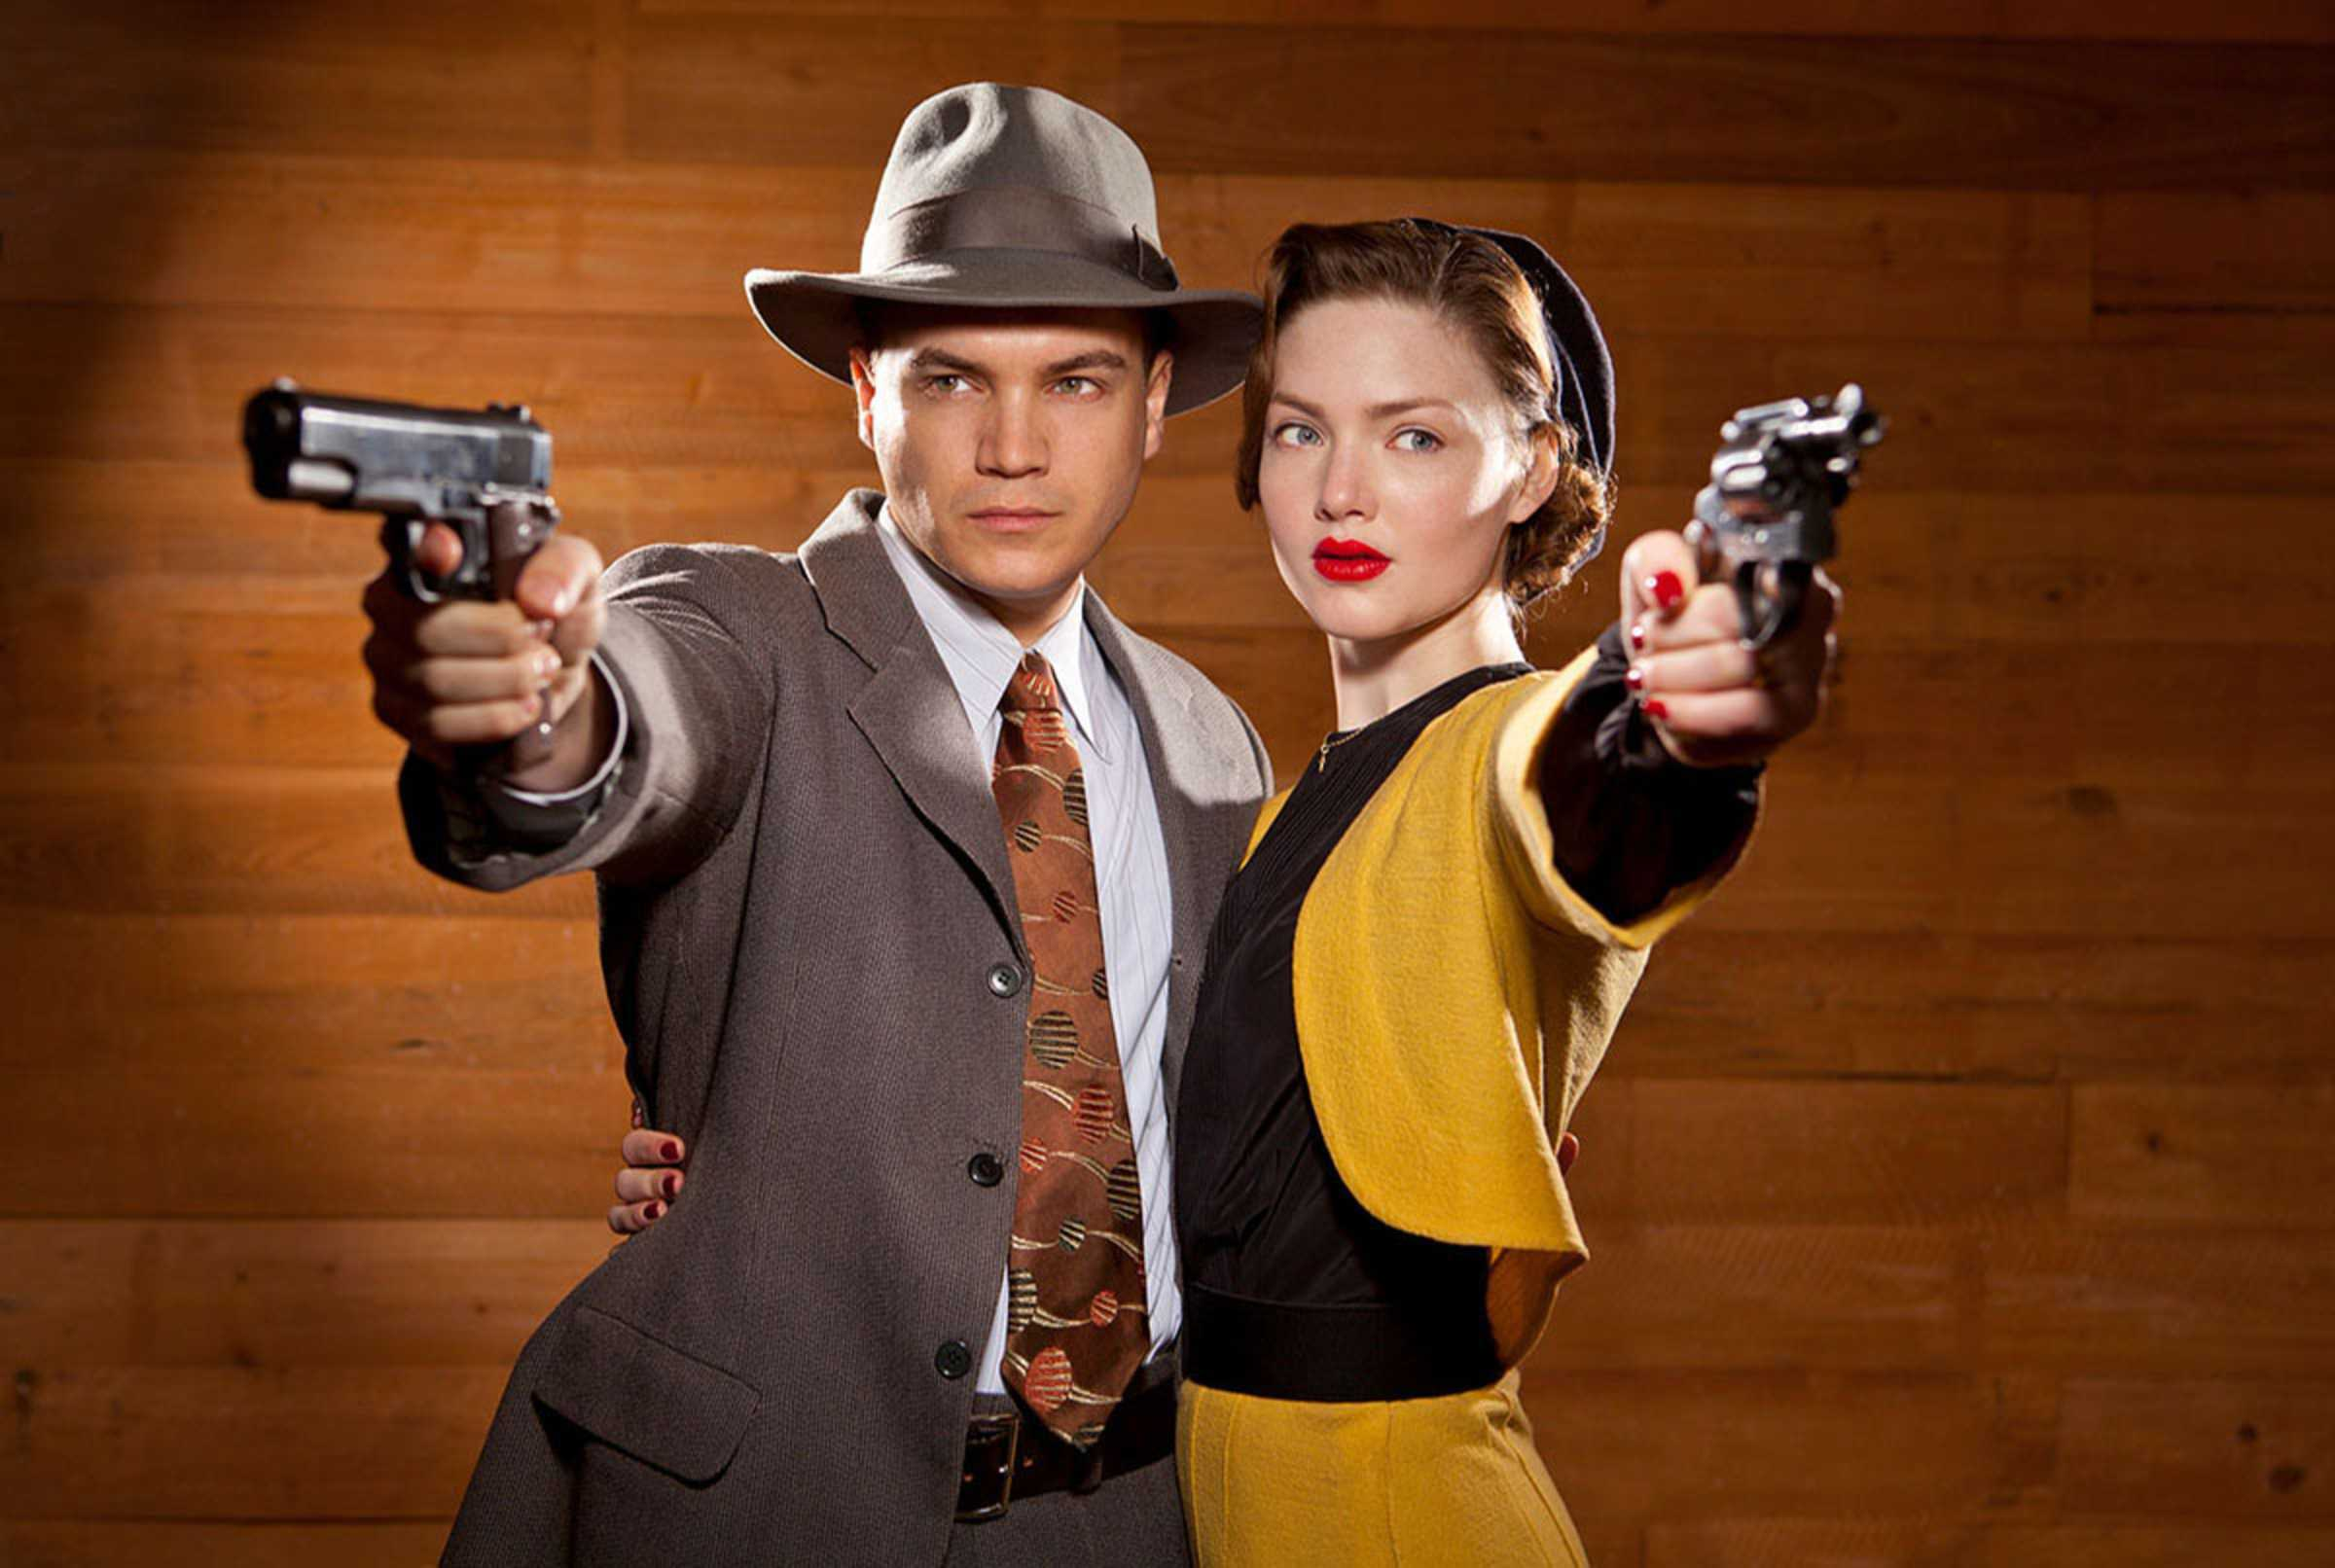 bonnie and clyde movie essay Bonnie and clyde essay examples a discussion on the involvement of women and young children in crime and violent actions in arthur penn's film bonnie and clyde.